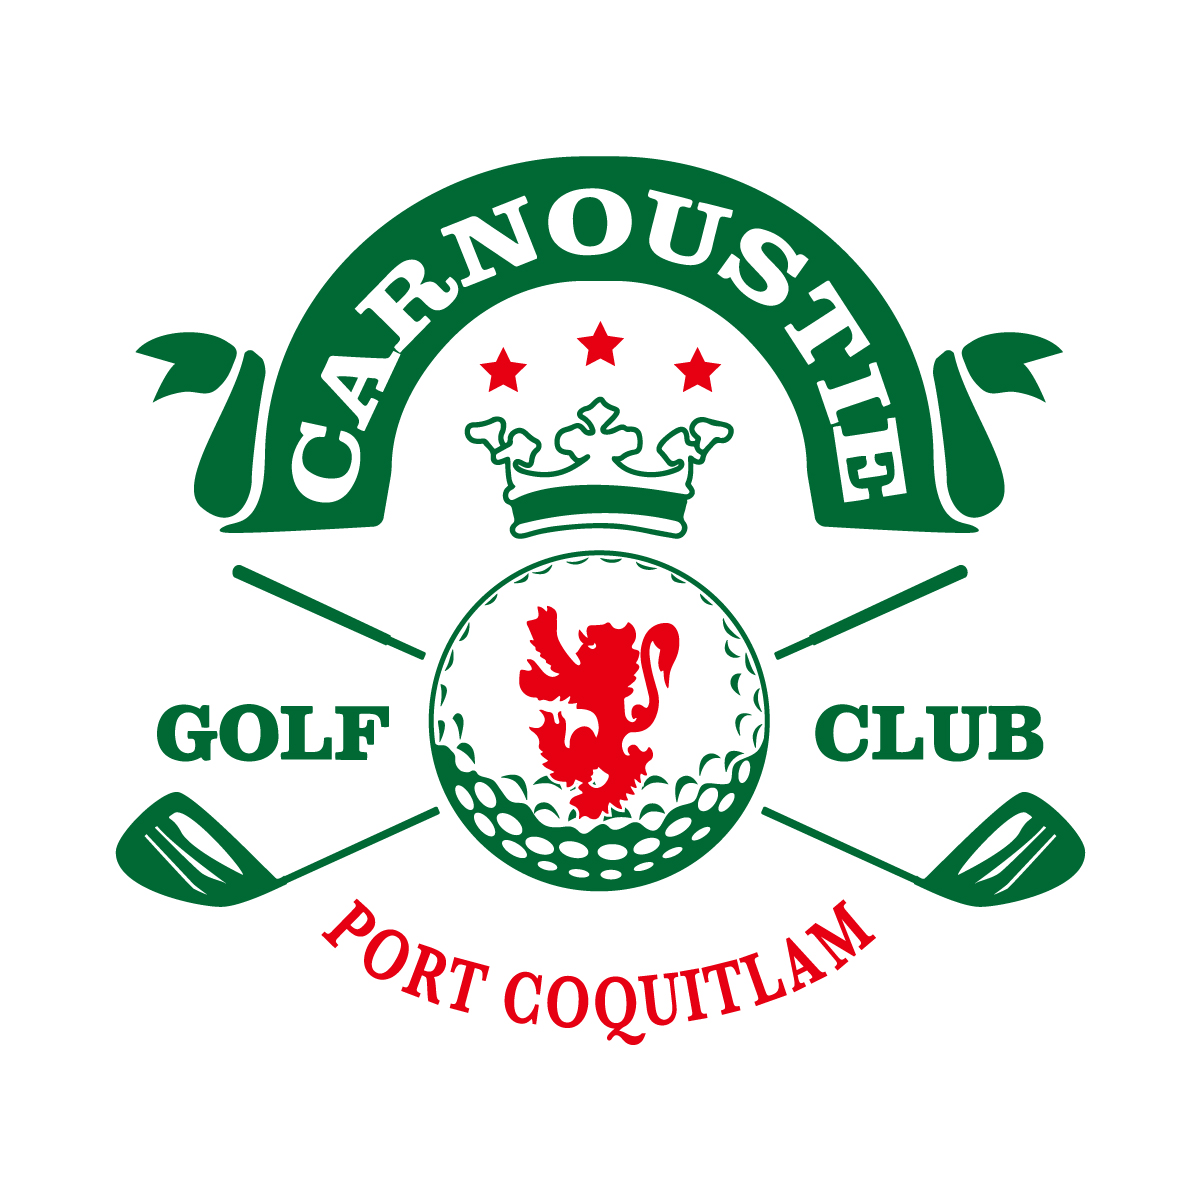 Carnoustie Golf Club